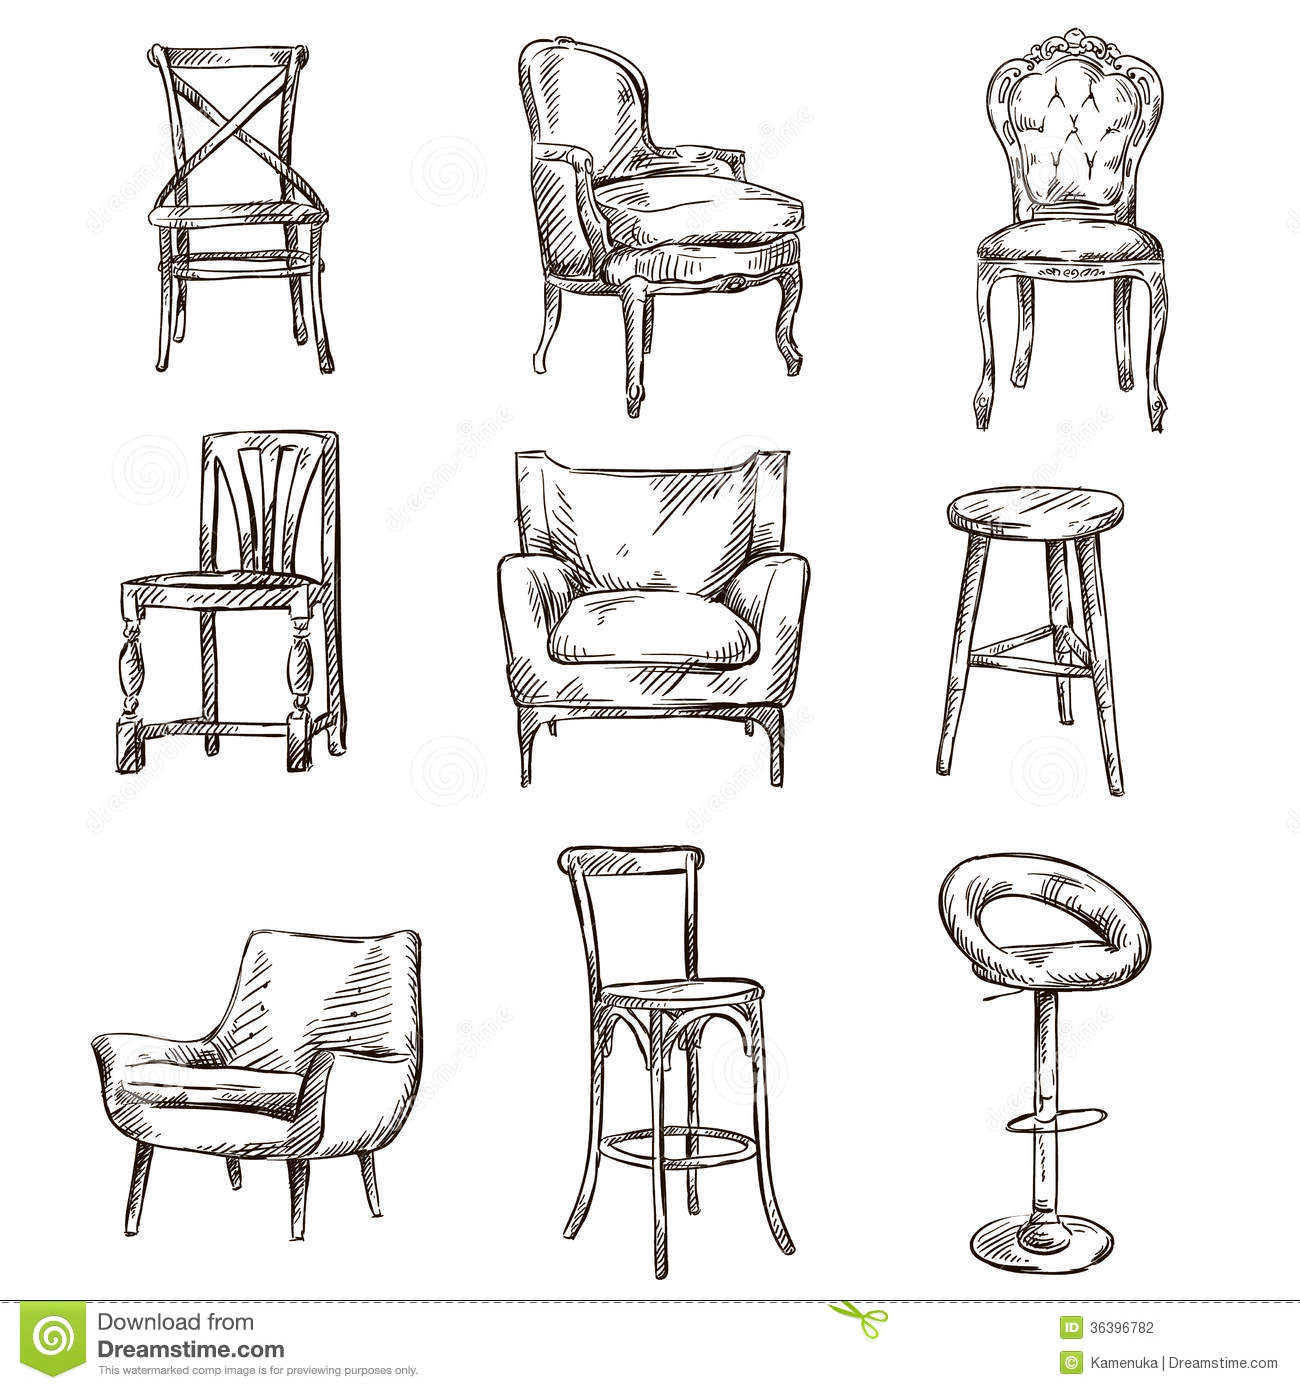 Schreibtischstuhl Vintage Set Of Hand Drawn Chairs Stock Vector. Illustration Of